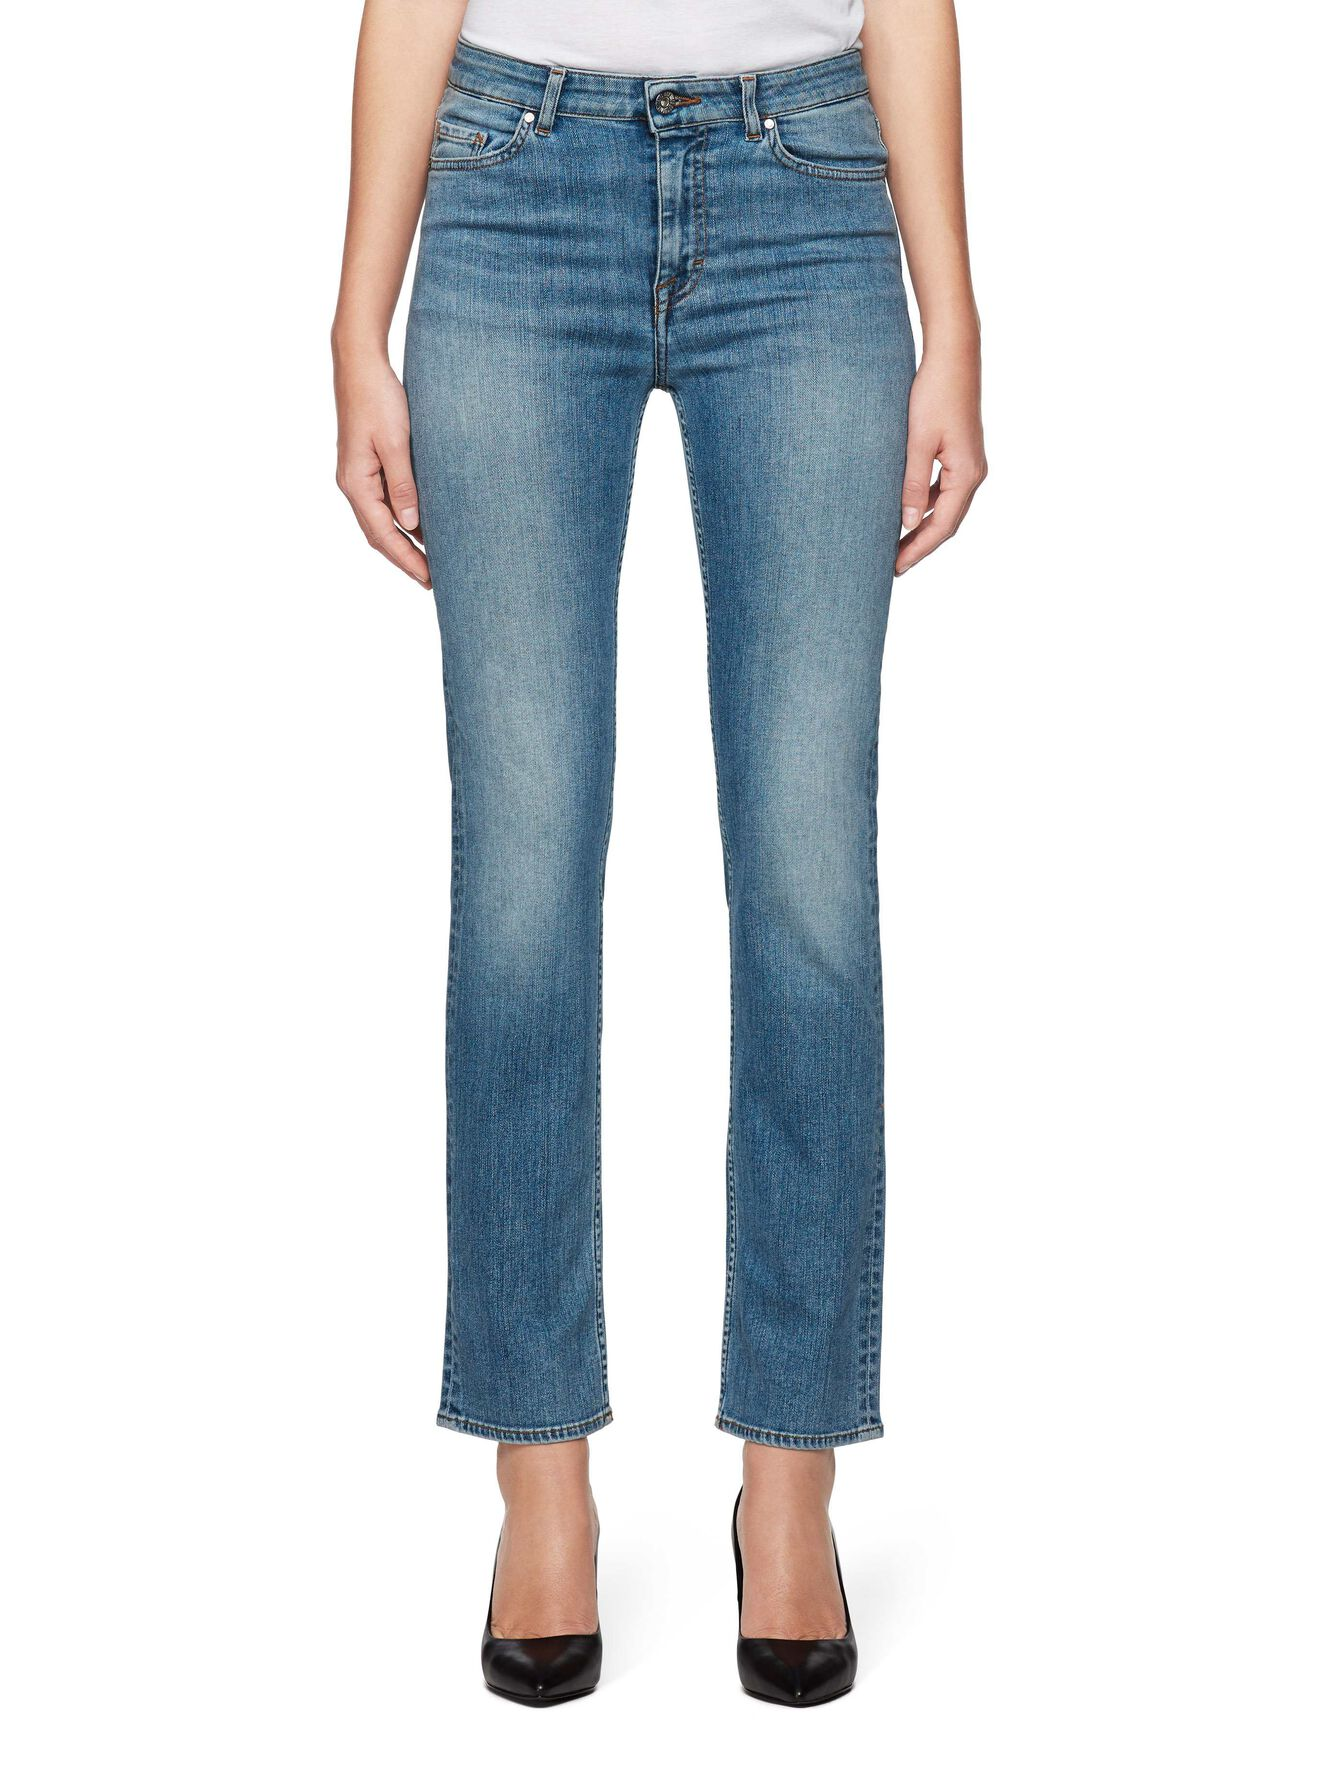 AMY JEANS in Light blue from Tiger of Sweden